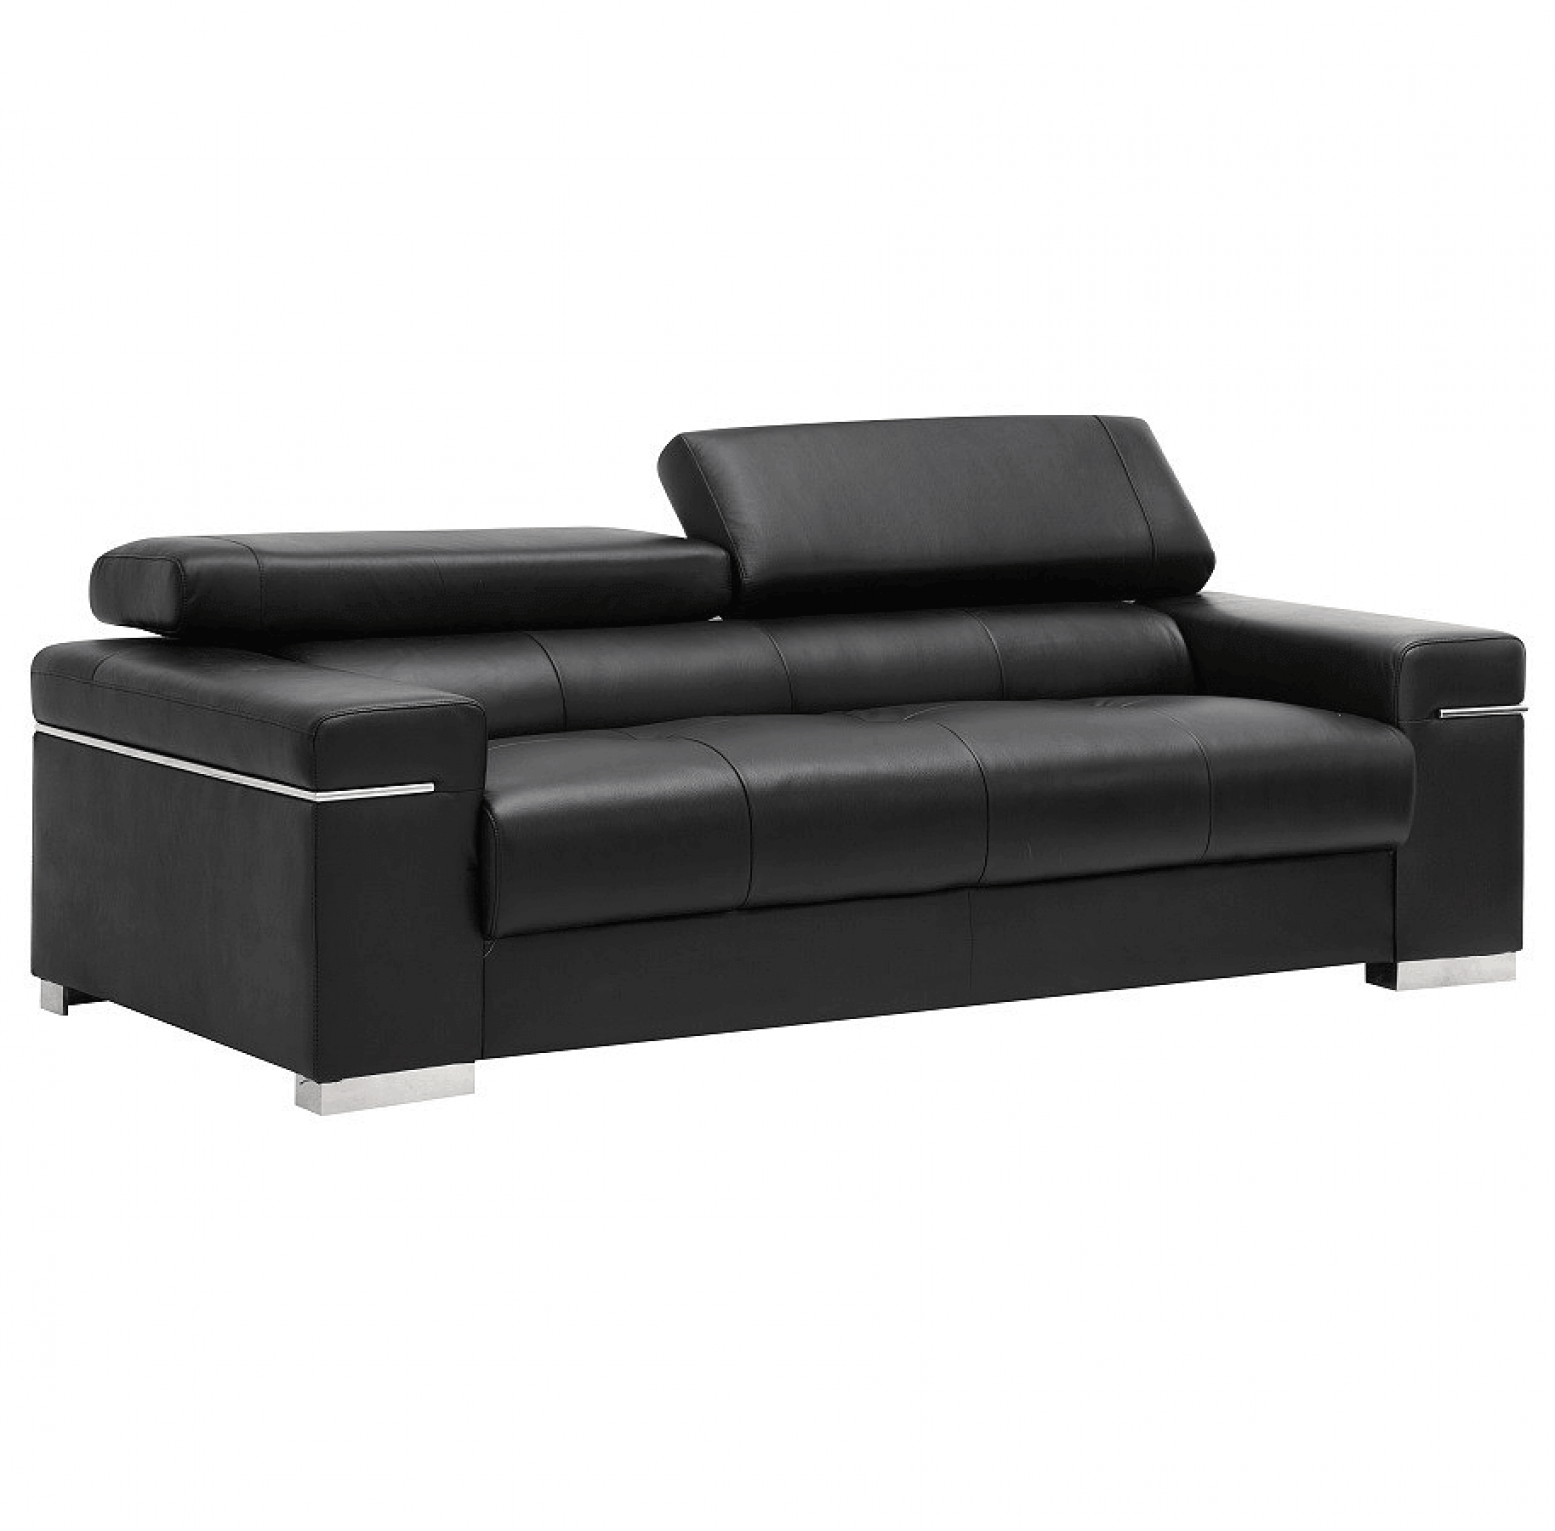 Soho Leather Sofa By J M Furniture